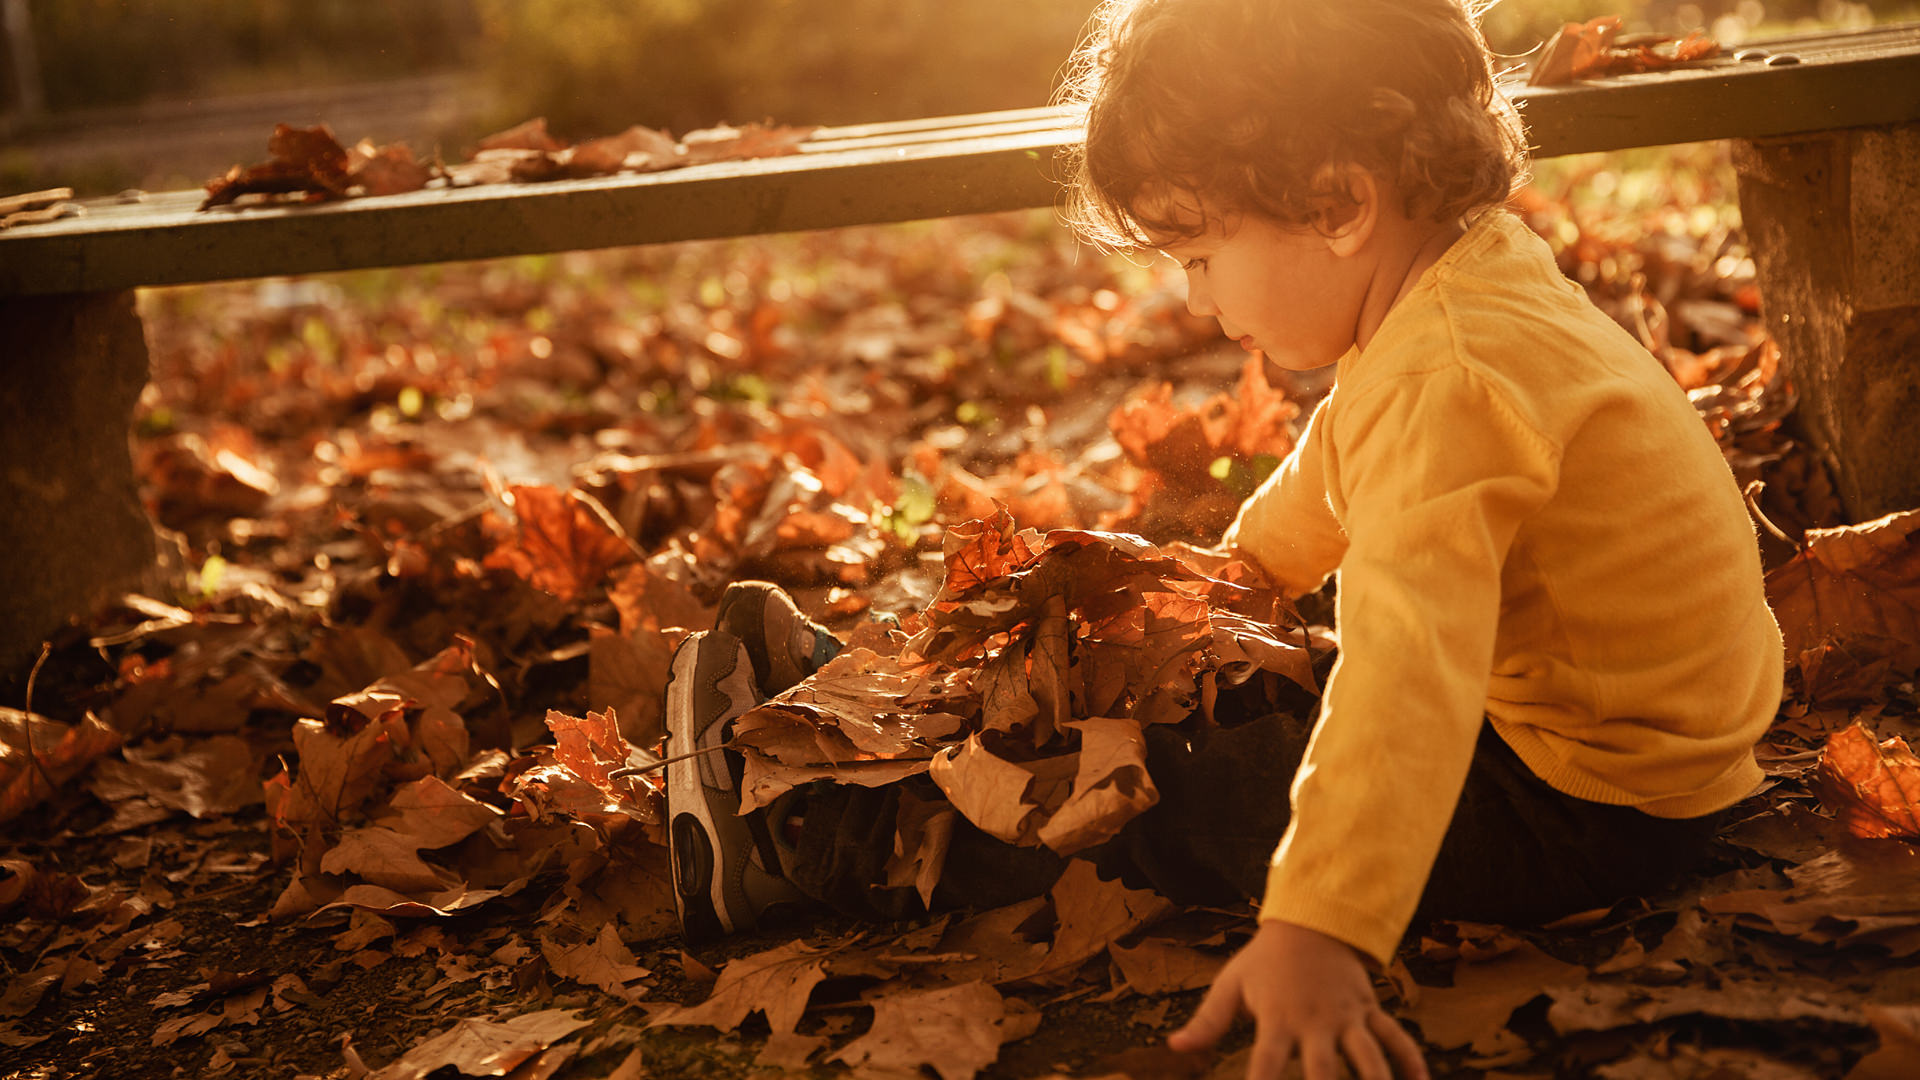 cphc_1920x1080_boy_fall_leaves